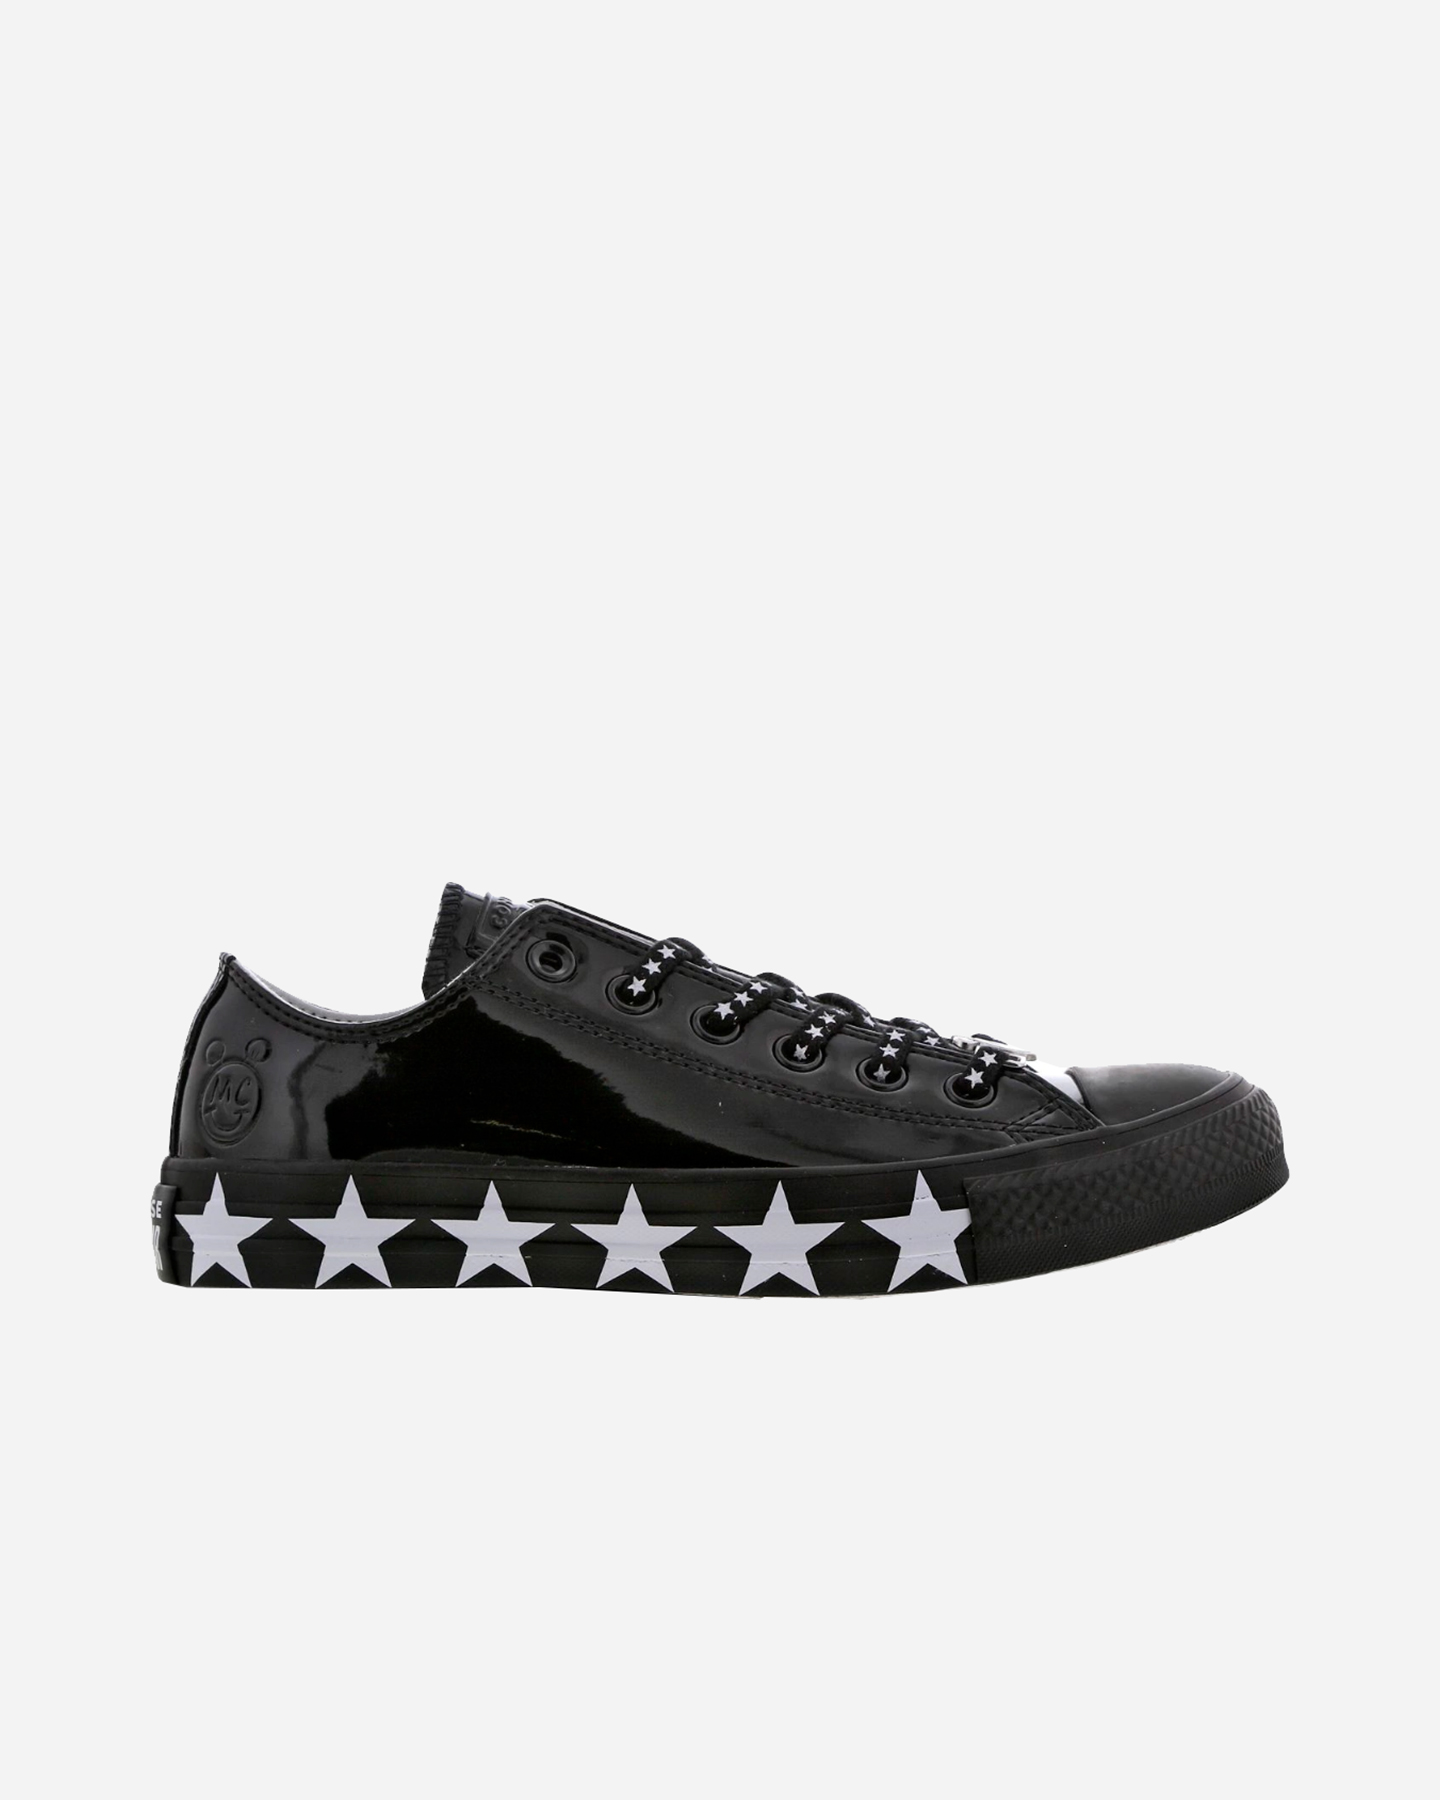 df775563657d Scarpe sneakers CONVERSE CHUCK TAYLOR ALL STAR X MILEY CYRUS ...